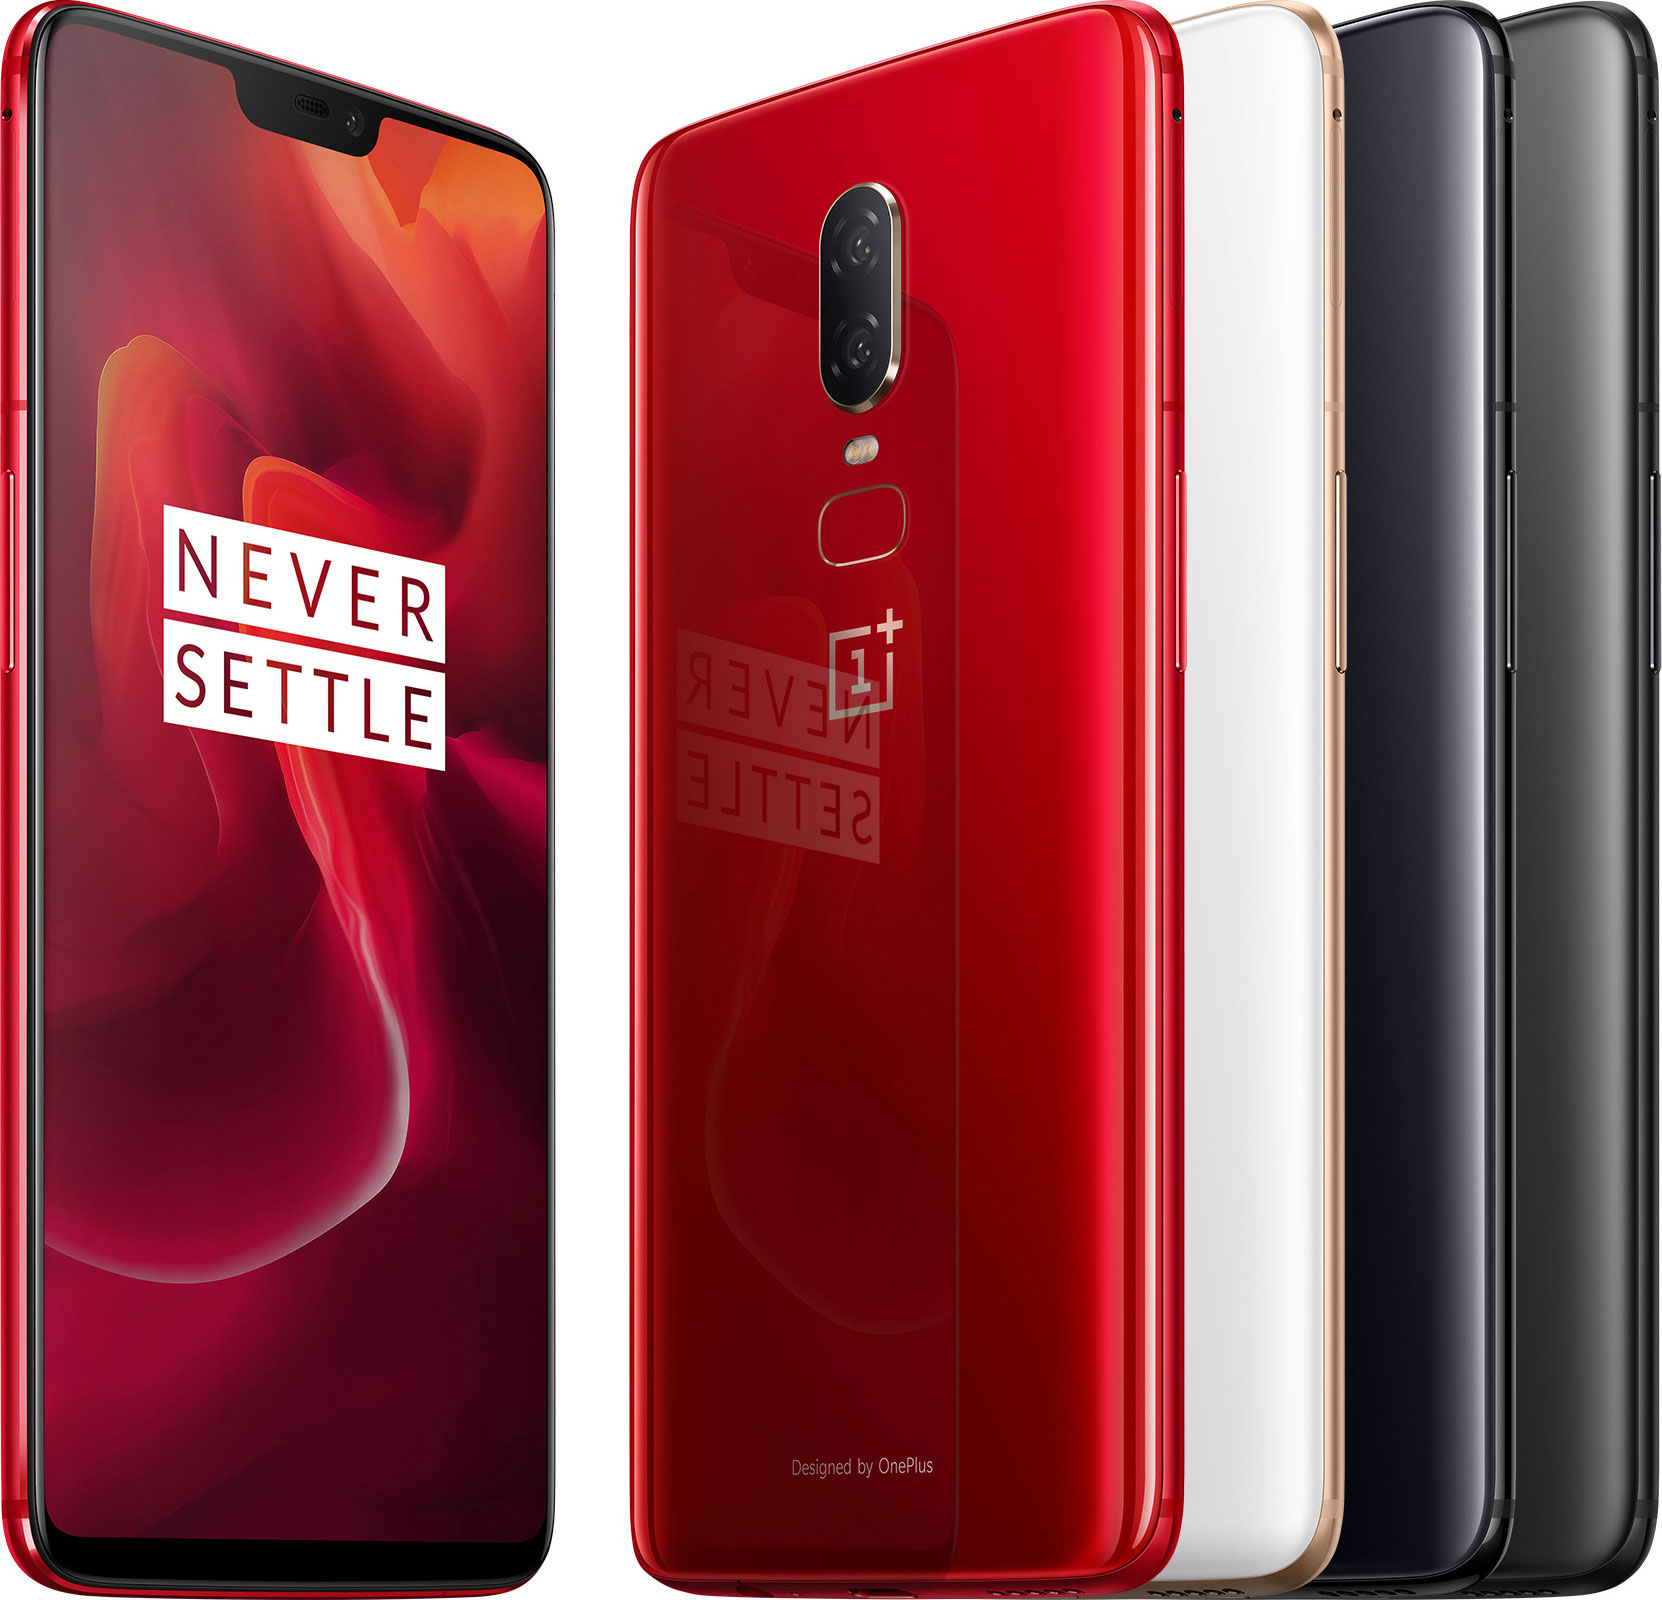 Buy OnePlus 6 and get Rs.1500 cash back on EMI transactions with ICICI Credit Cards.